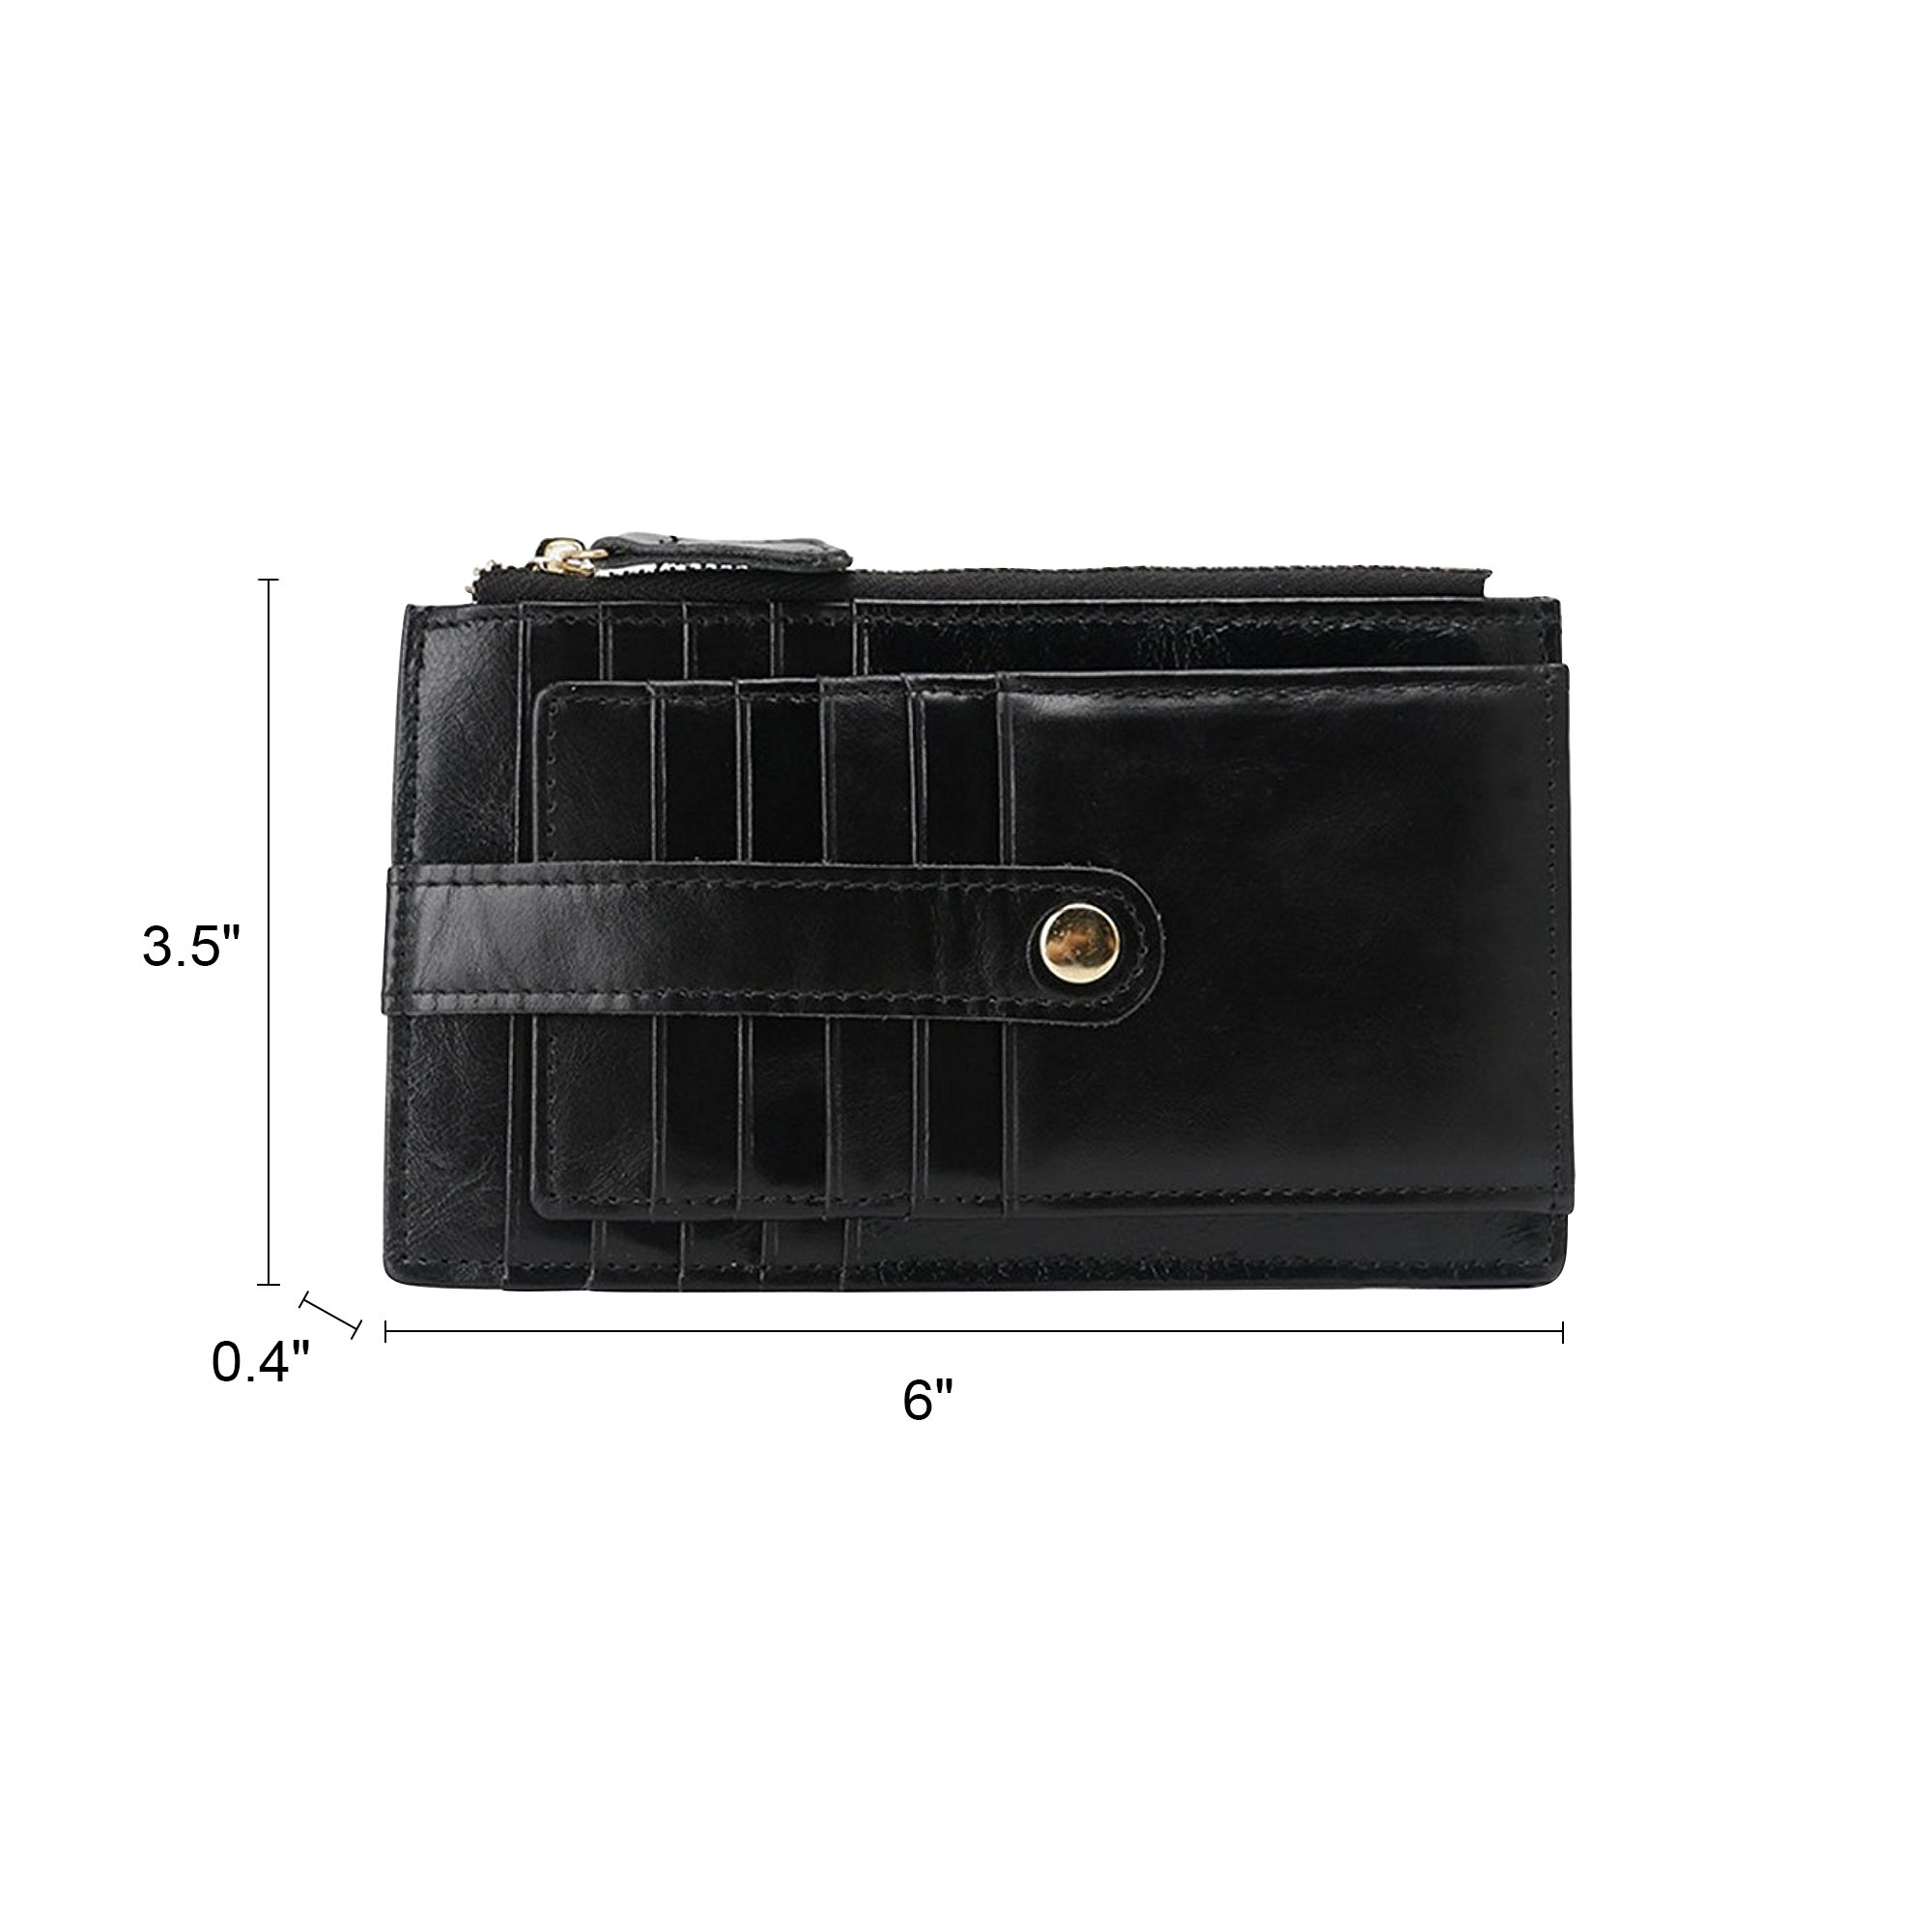 Onstro RFID Blocking Wallets for Women Genuine Leather Multi Credit Card Organizer with ID window by Onstro (Image #6)